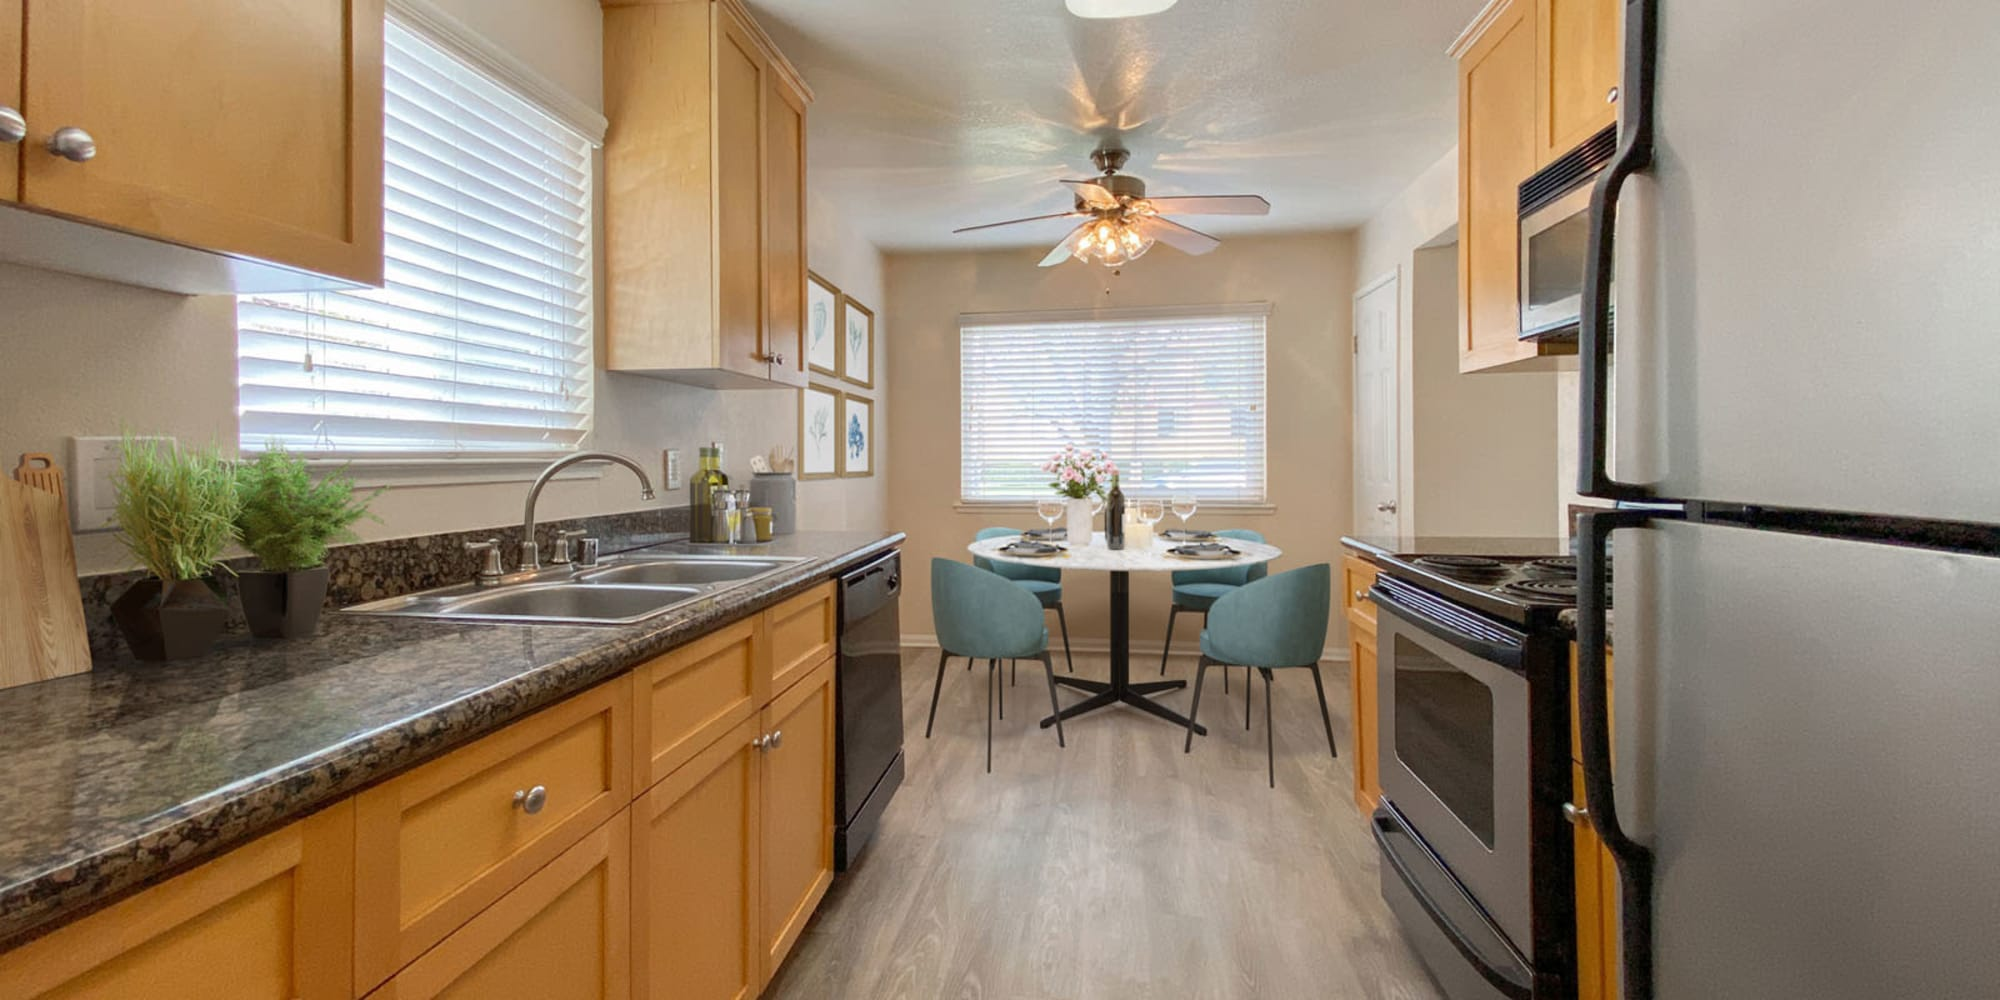 View of the dining nook from a model home's kitchen featuring stainless-steel appliances and hardwood flooring at Pleasanton Place Apartment Homes in Pleasanton, California